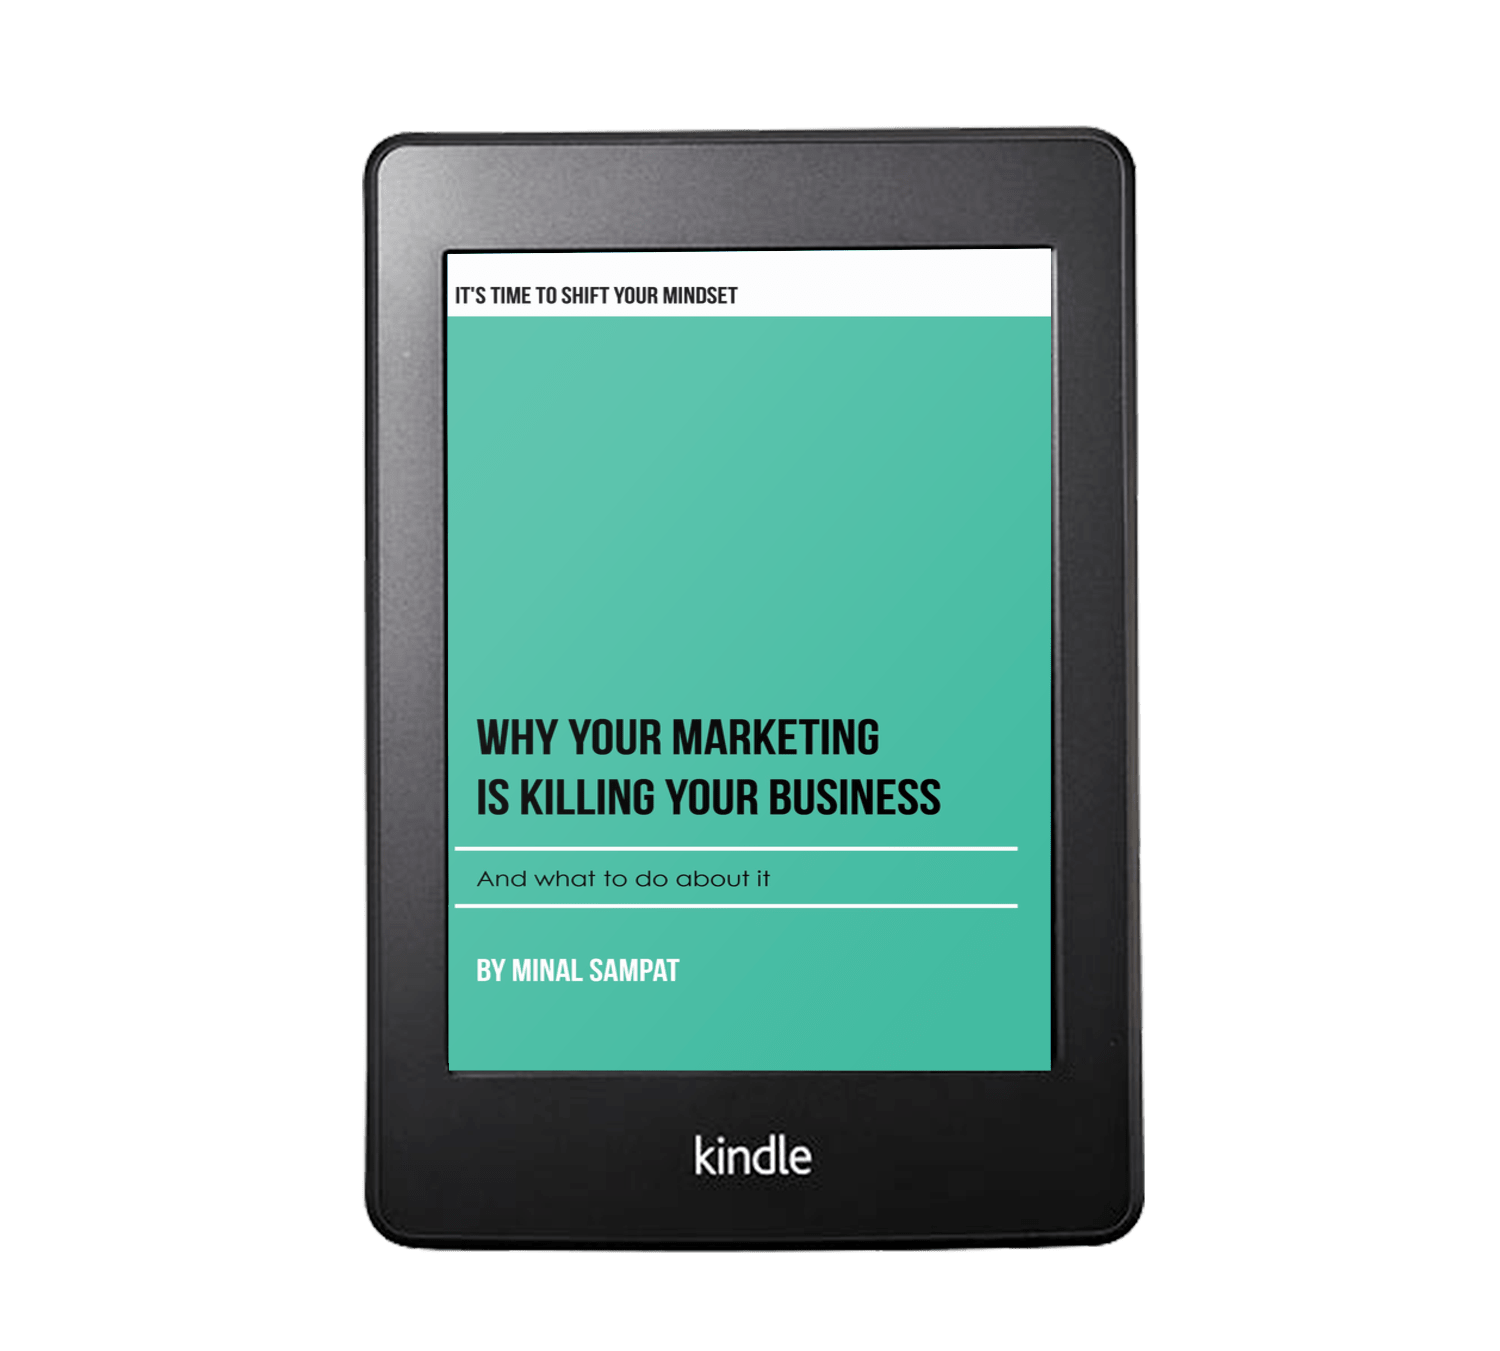 Why Your Marketing is Killing Your Business Kindle